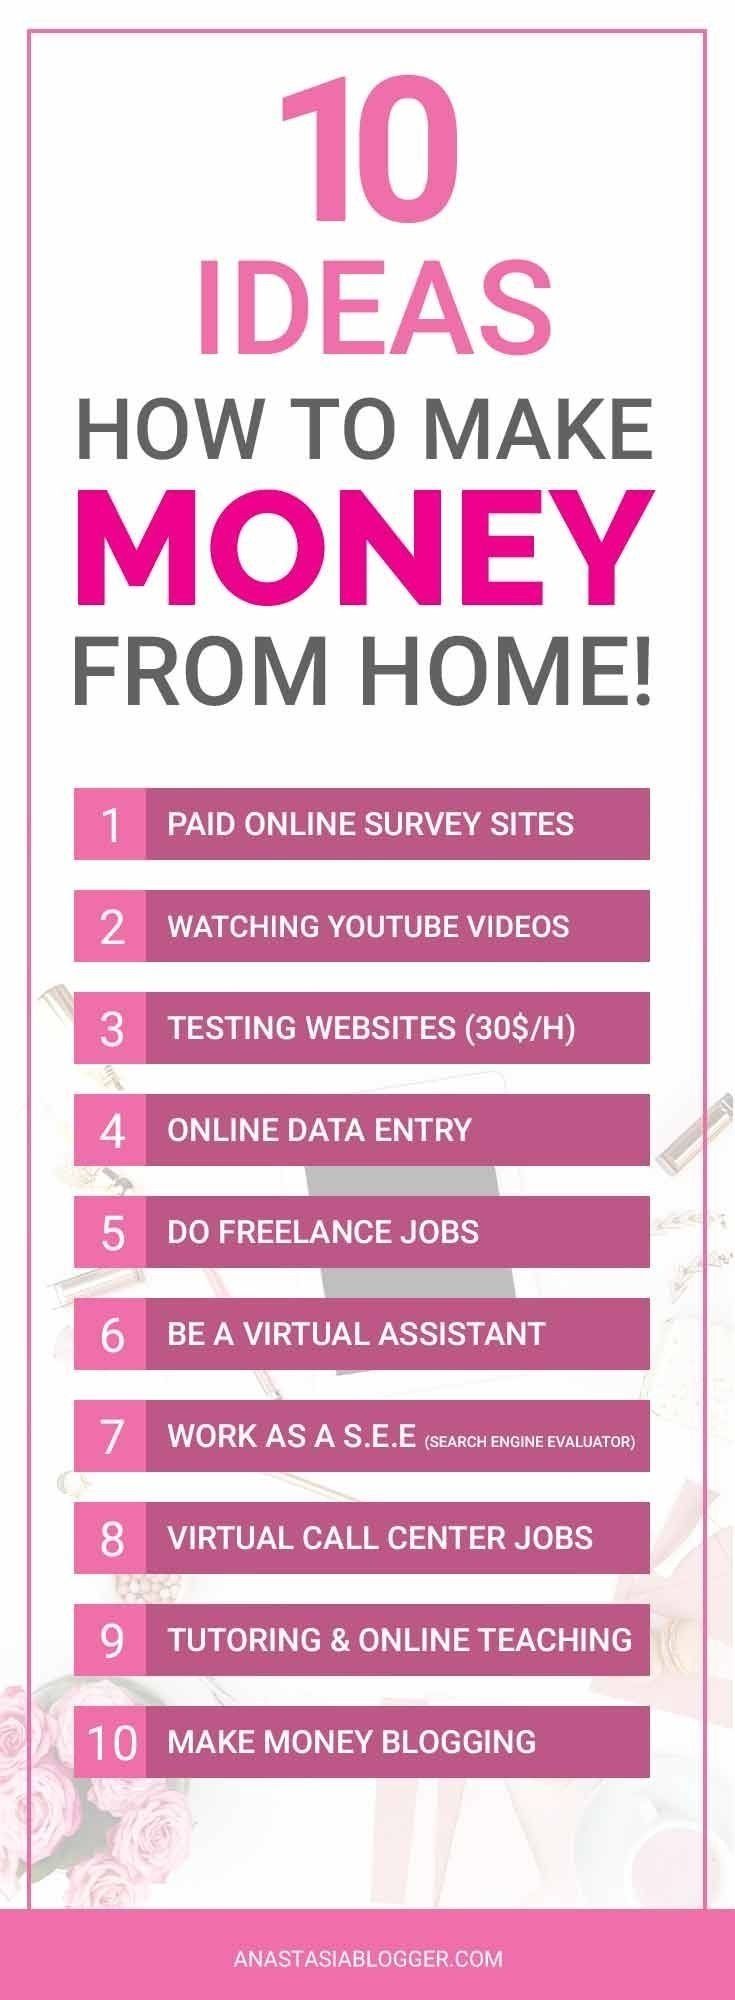 10 Perfect Ideas To Make Money Fast 10 ideas how to make money from home start earning today 1